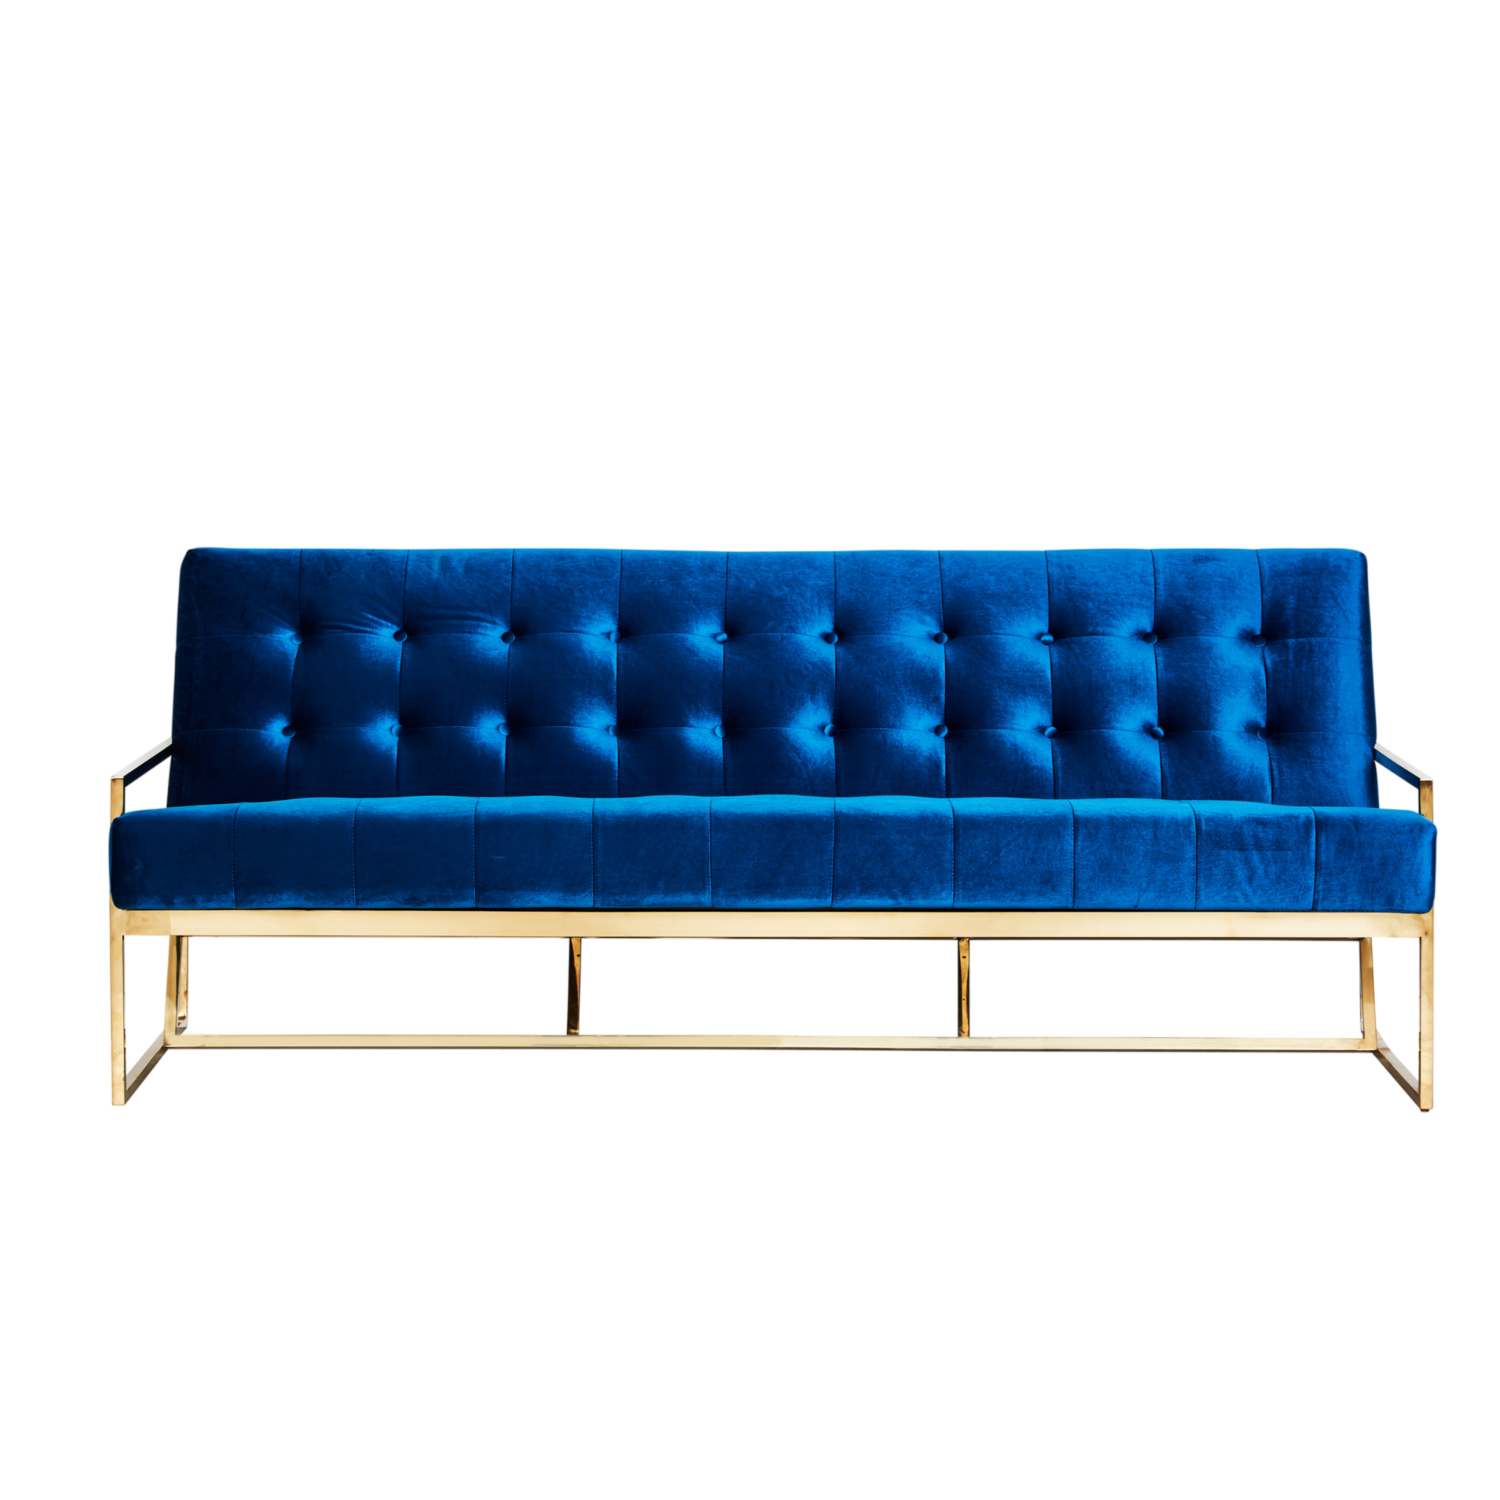 Starlet Three Seater Sofa - Teal / Gold Frame - Event Artillery